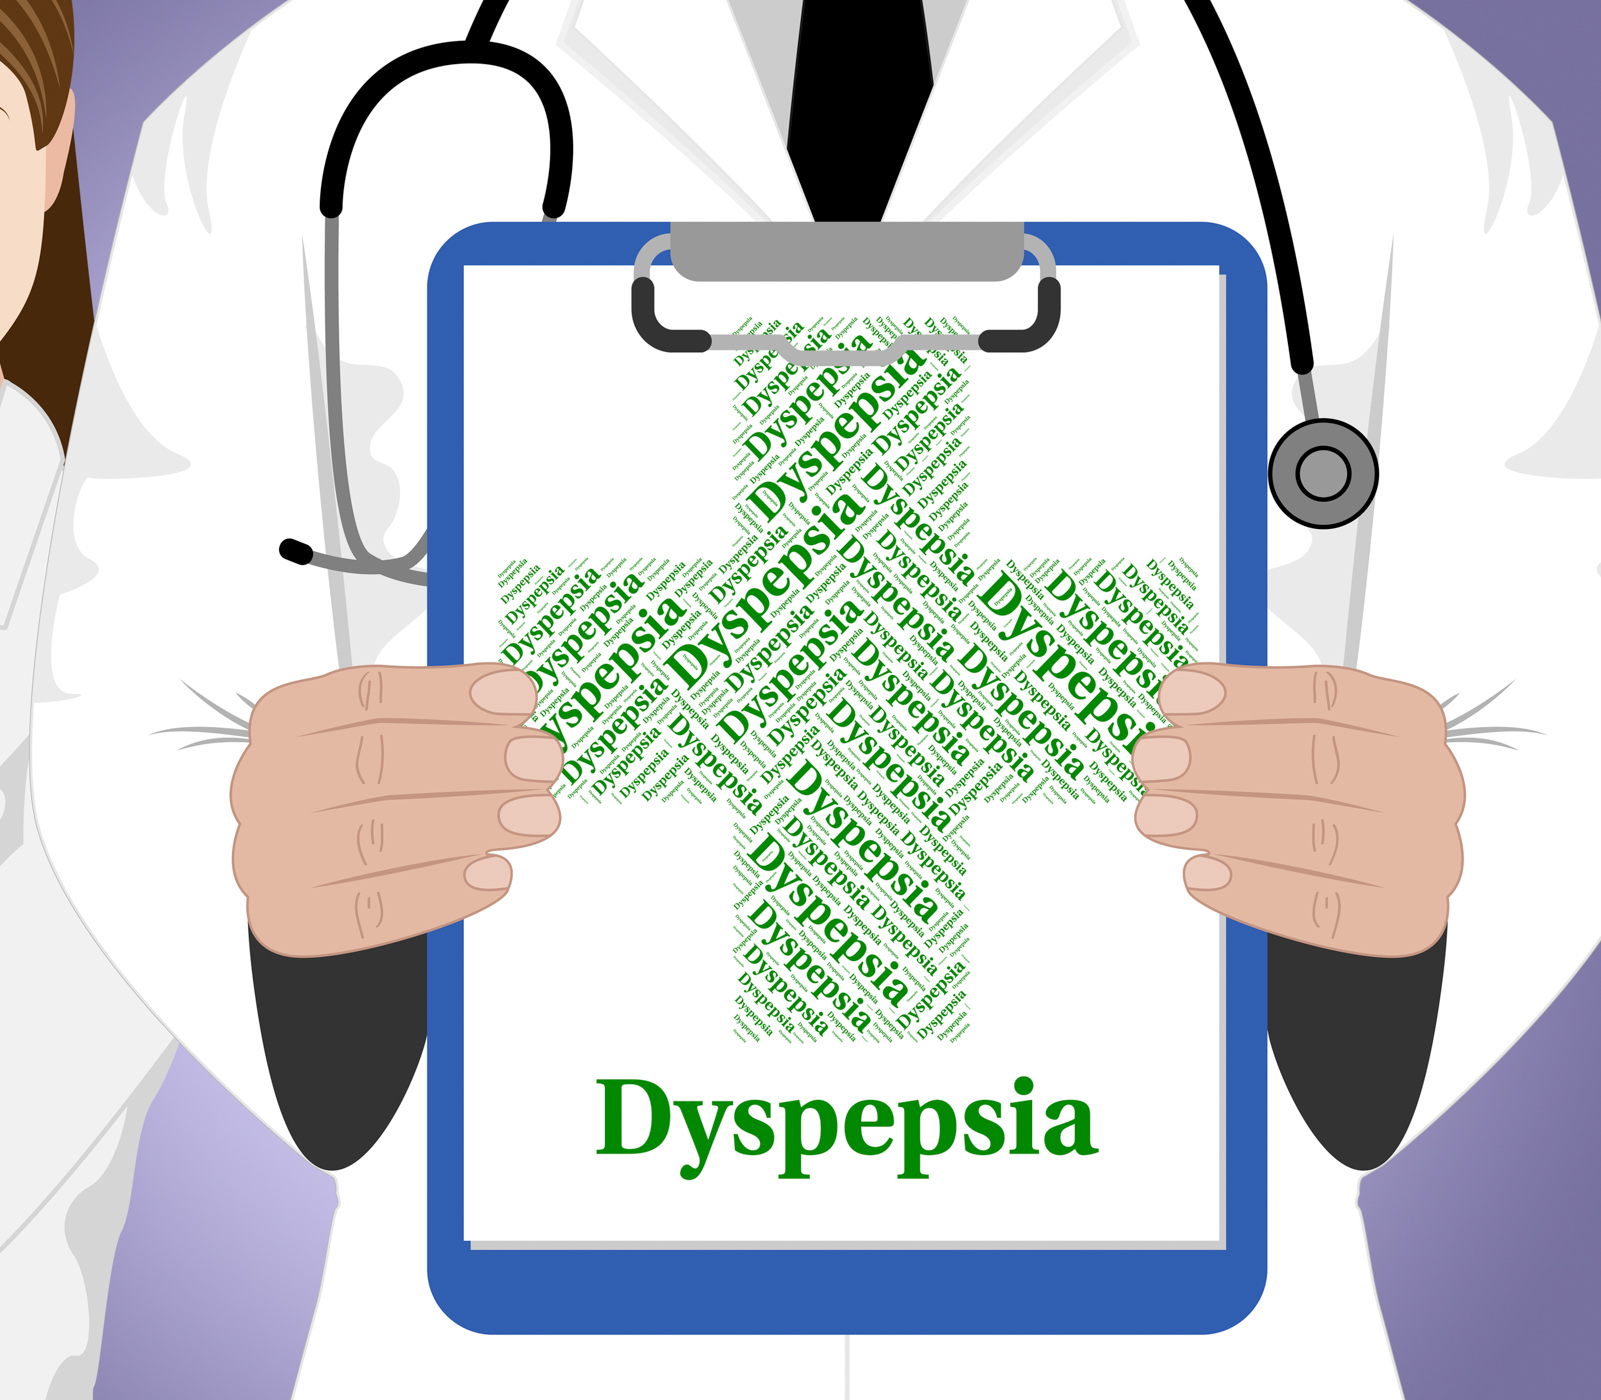 Dyspepsia word indicates poor health and affliction photo